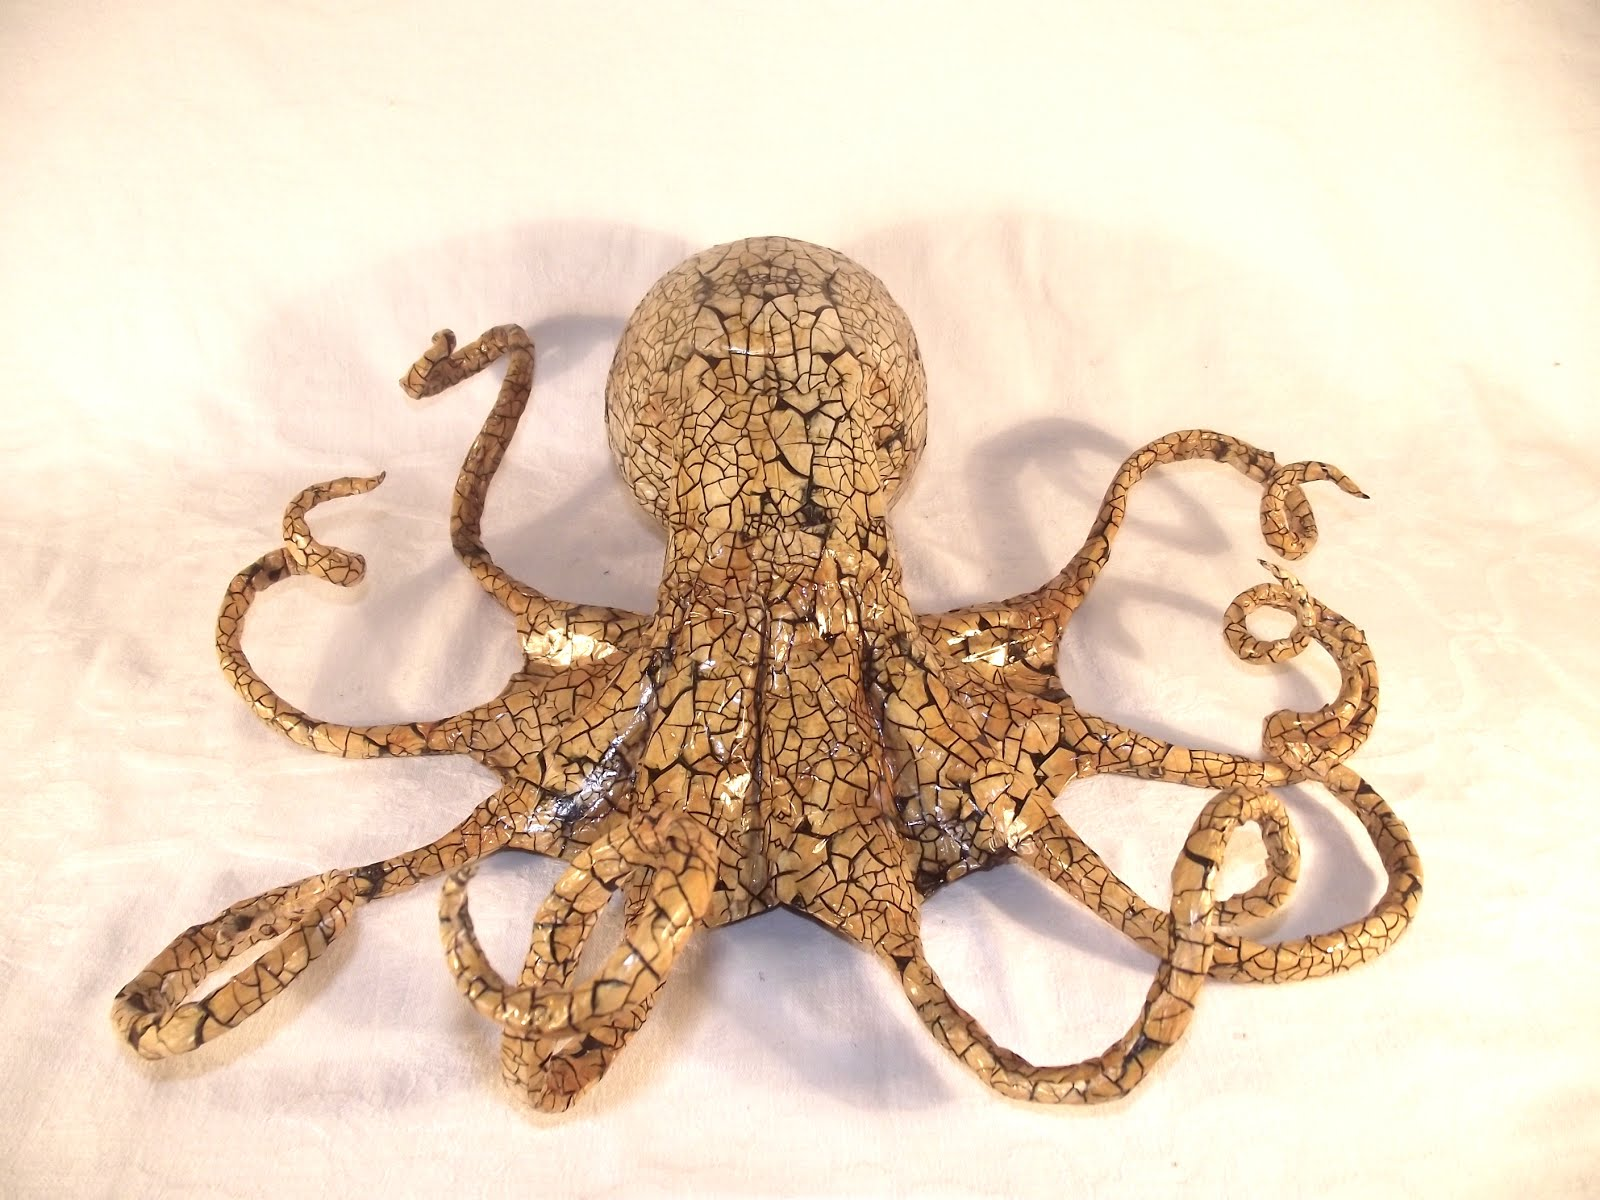 Octopus by Kuriology